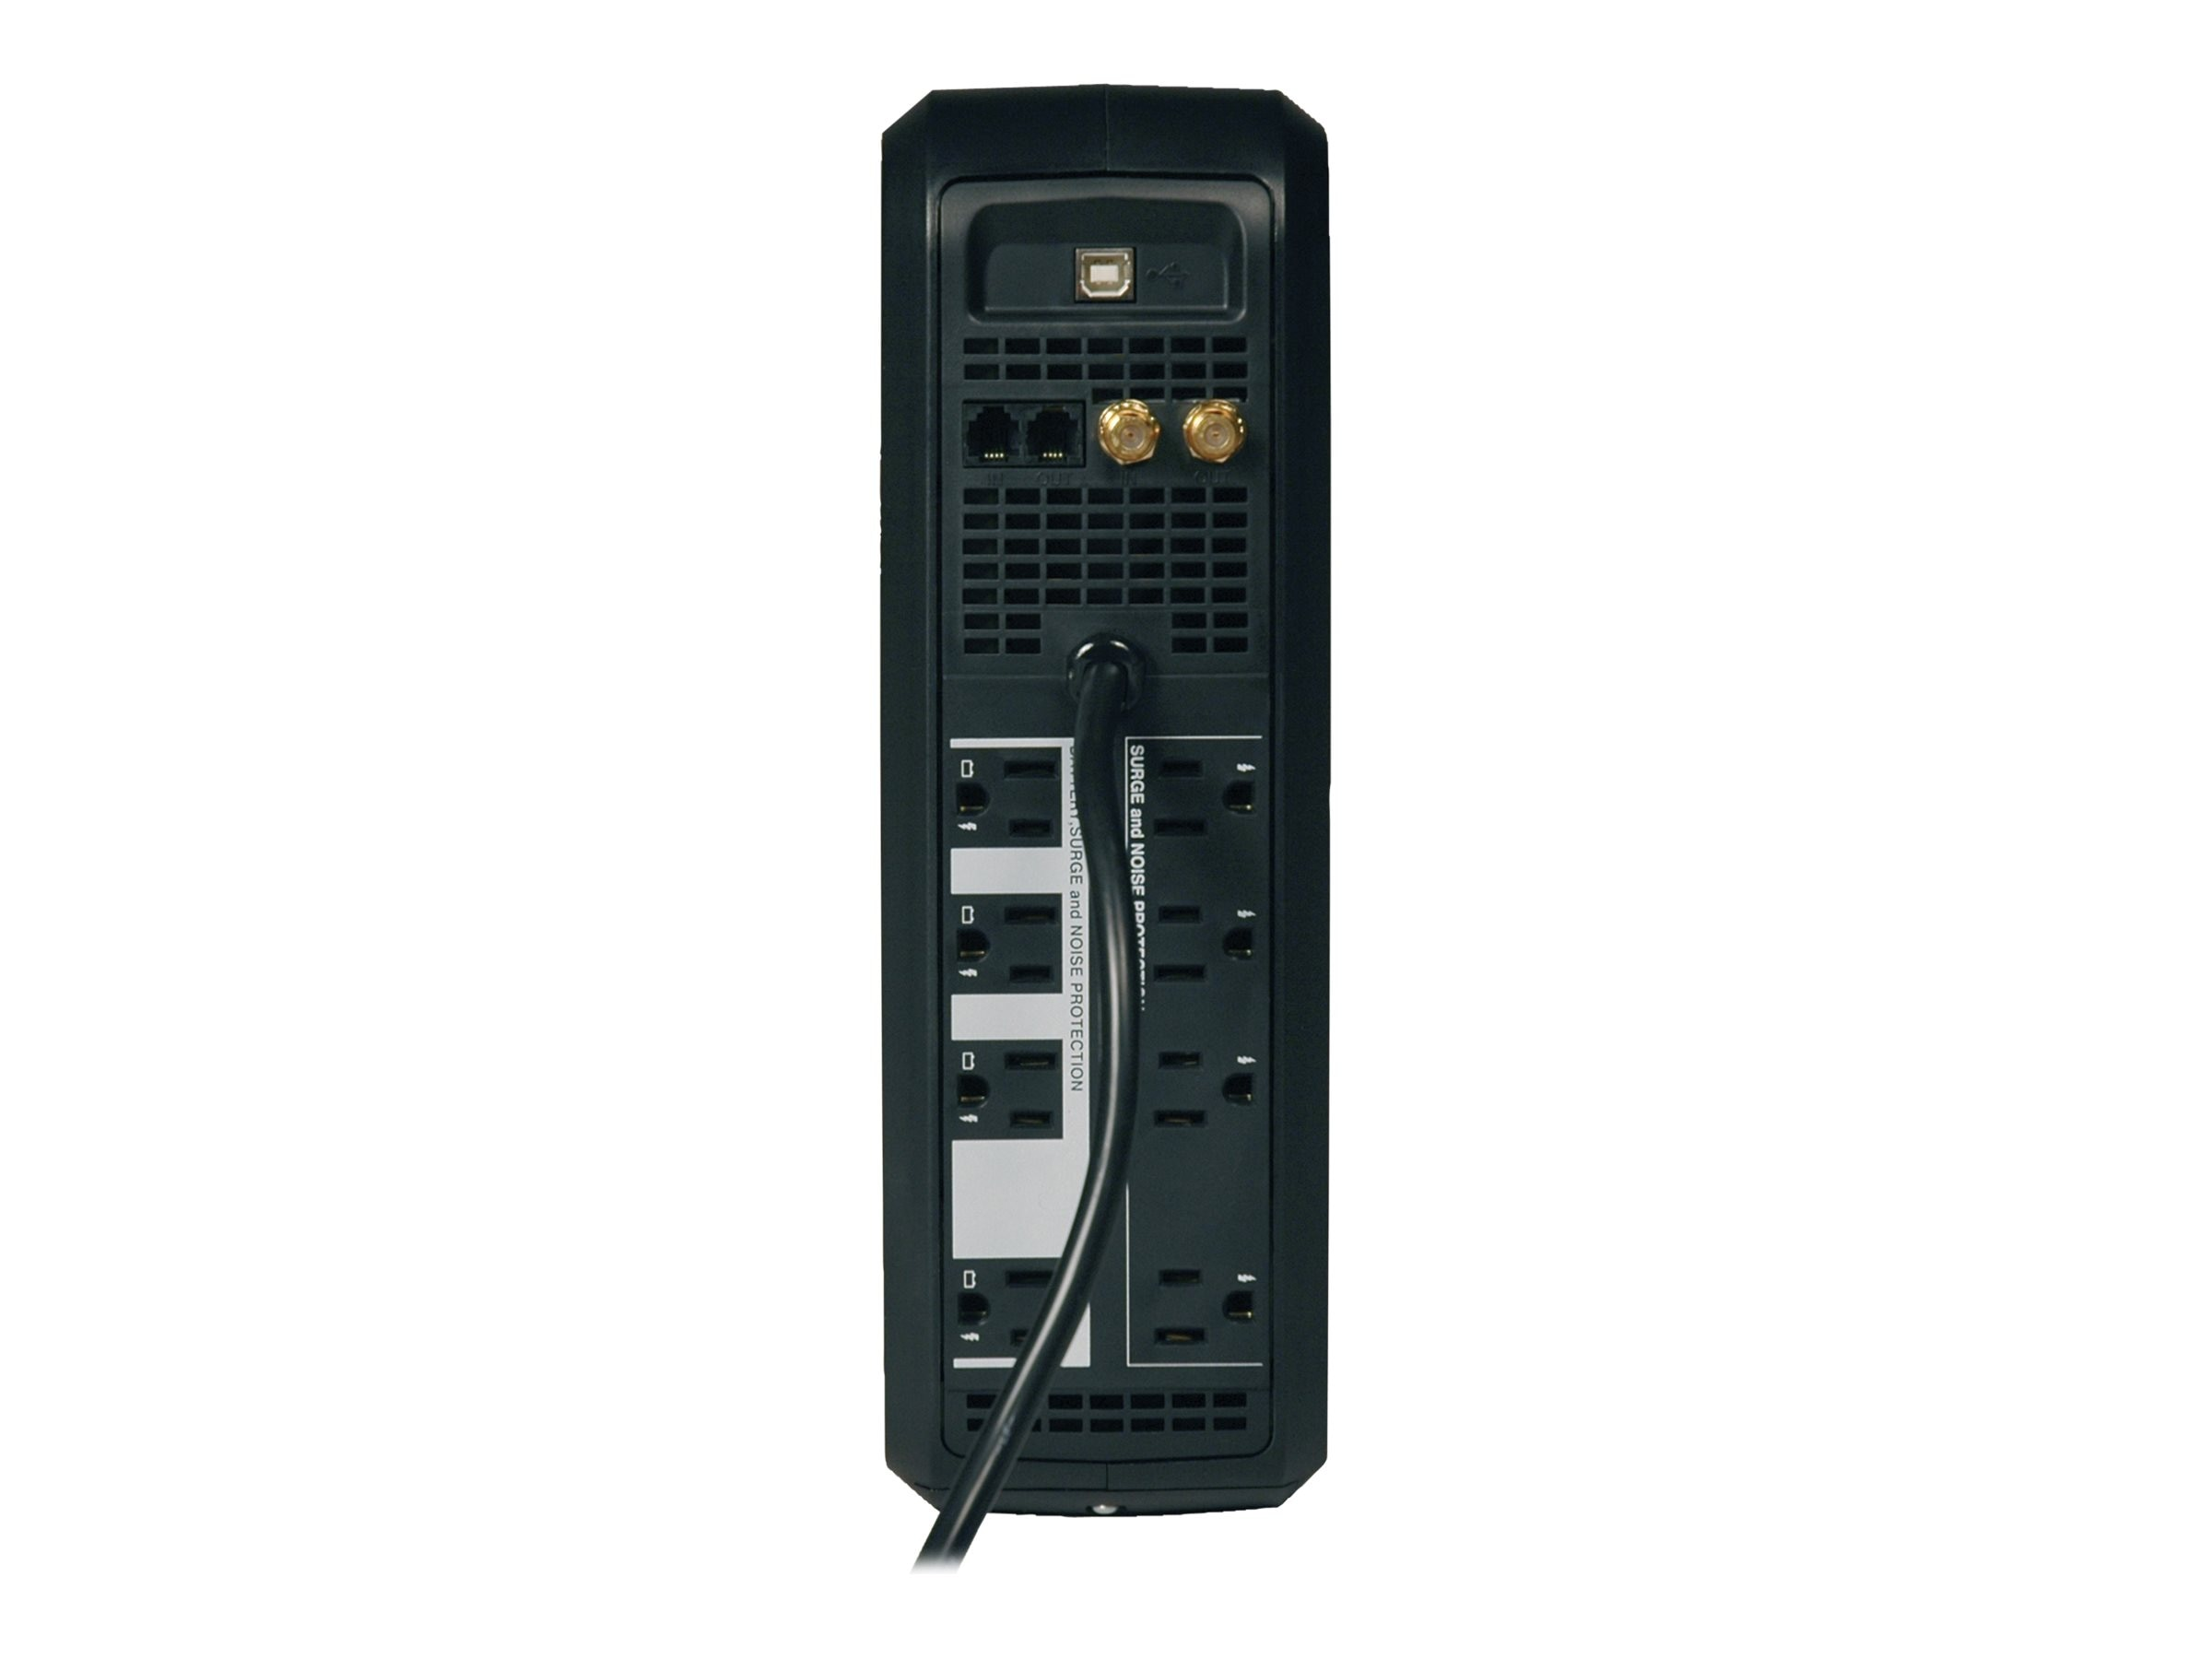 Tripp Lite 1000VA UPS Smart Pro Digital LCD Line-Interactive (8) Outlet, SMART1000LCD